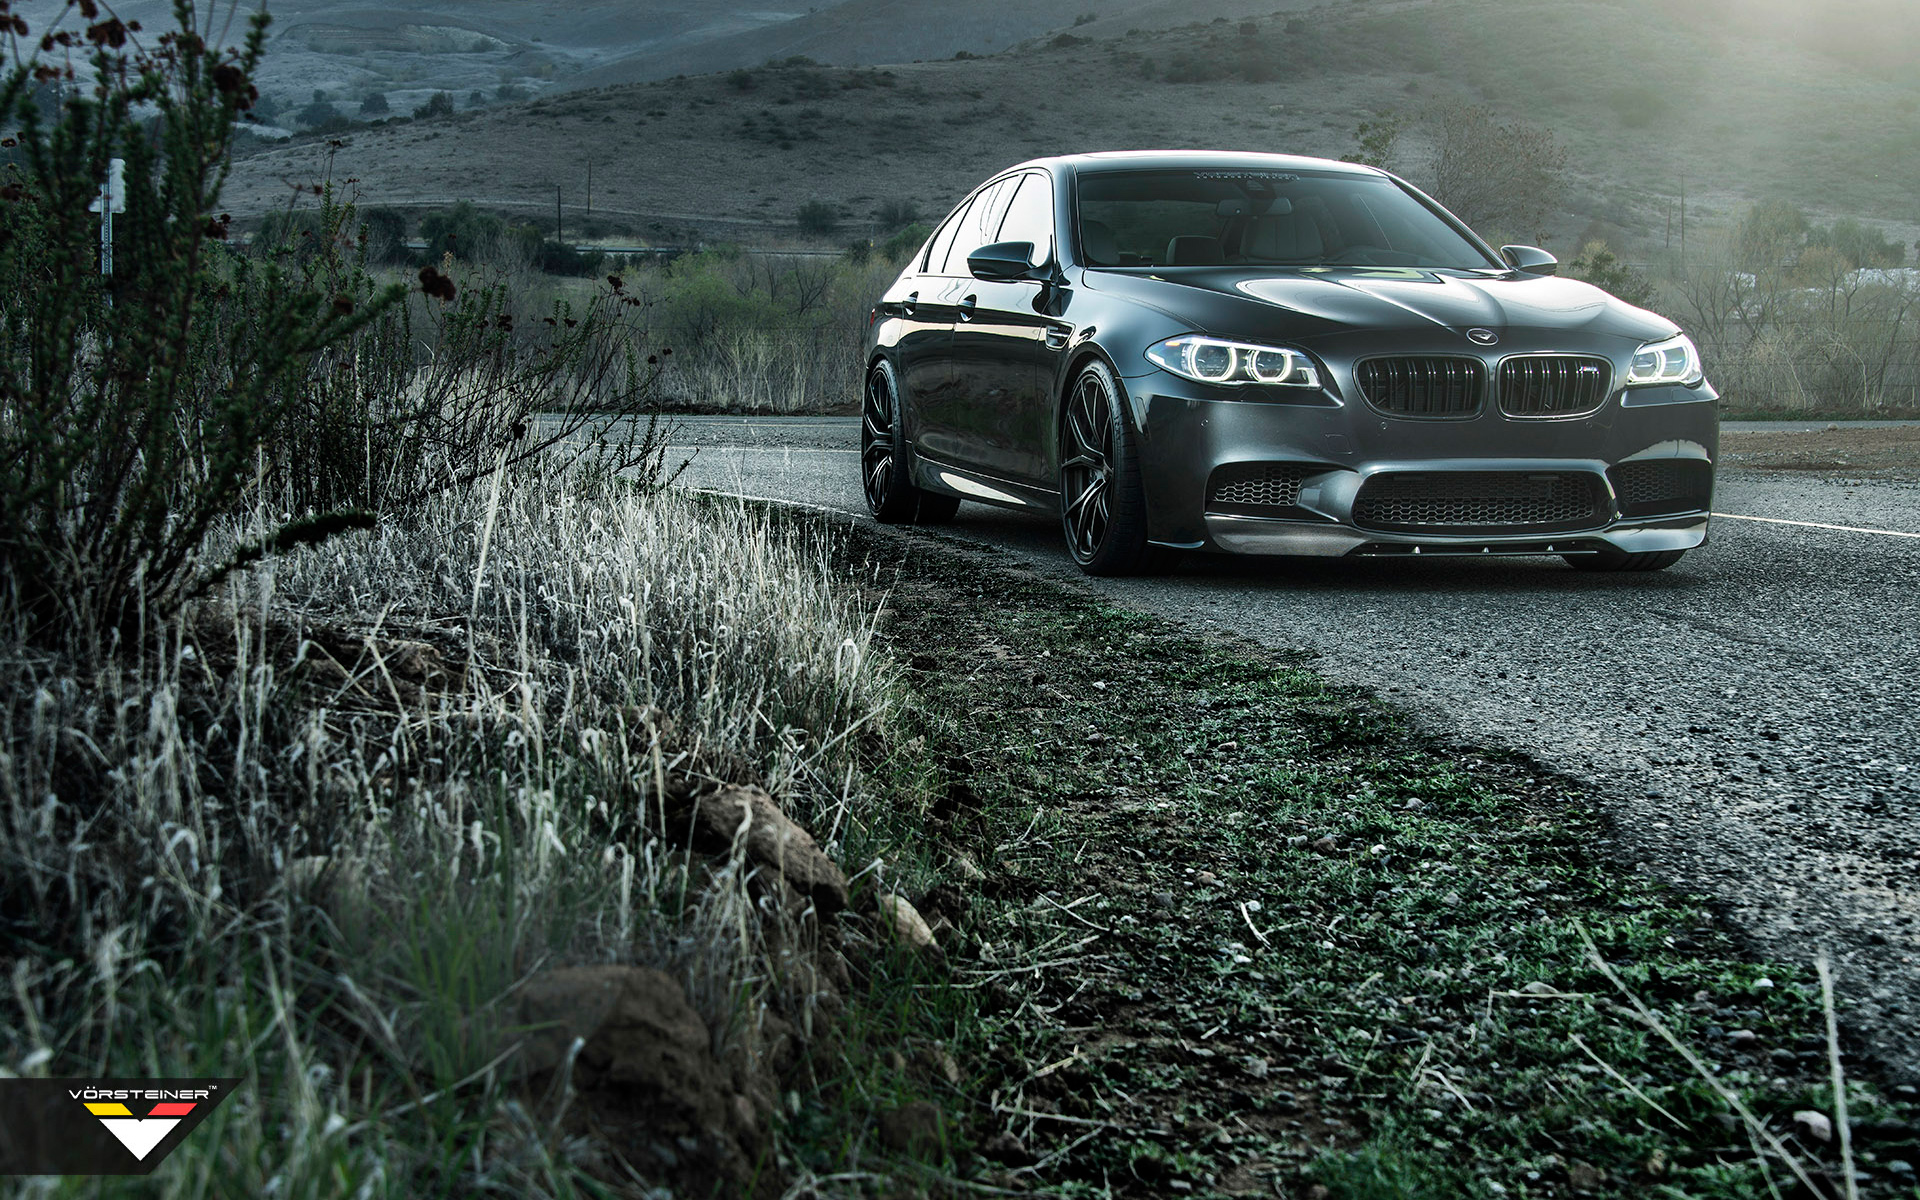 Vorsteiner Bmw M5 Vse Wallpaper Hd Car Wallpapers Id 4463